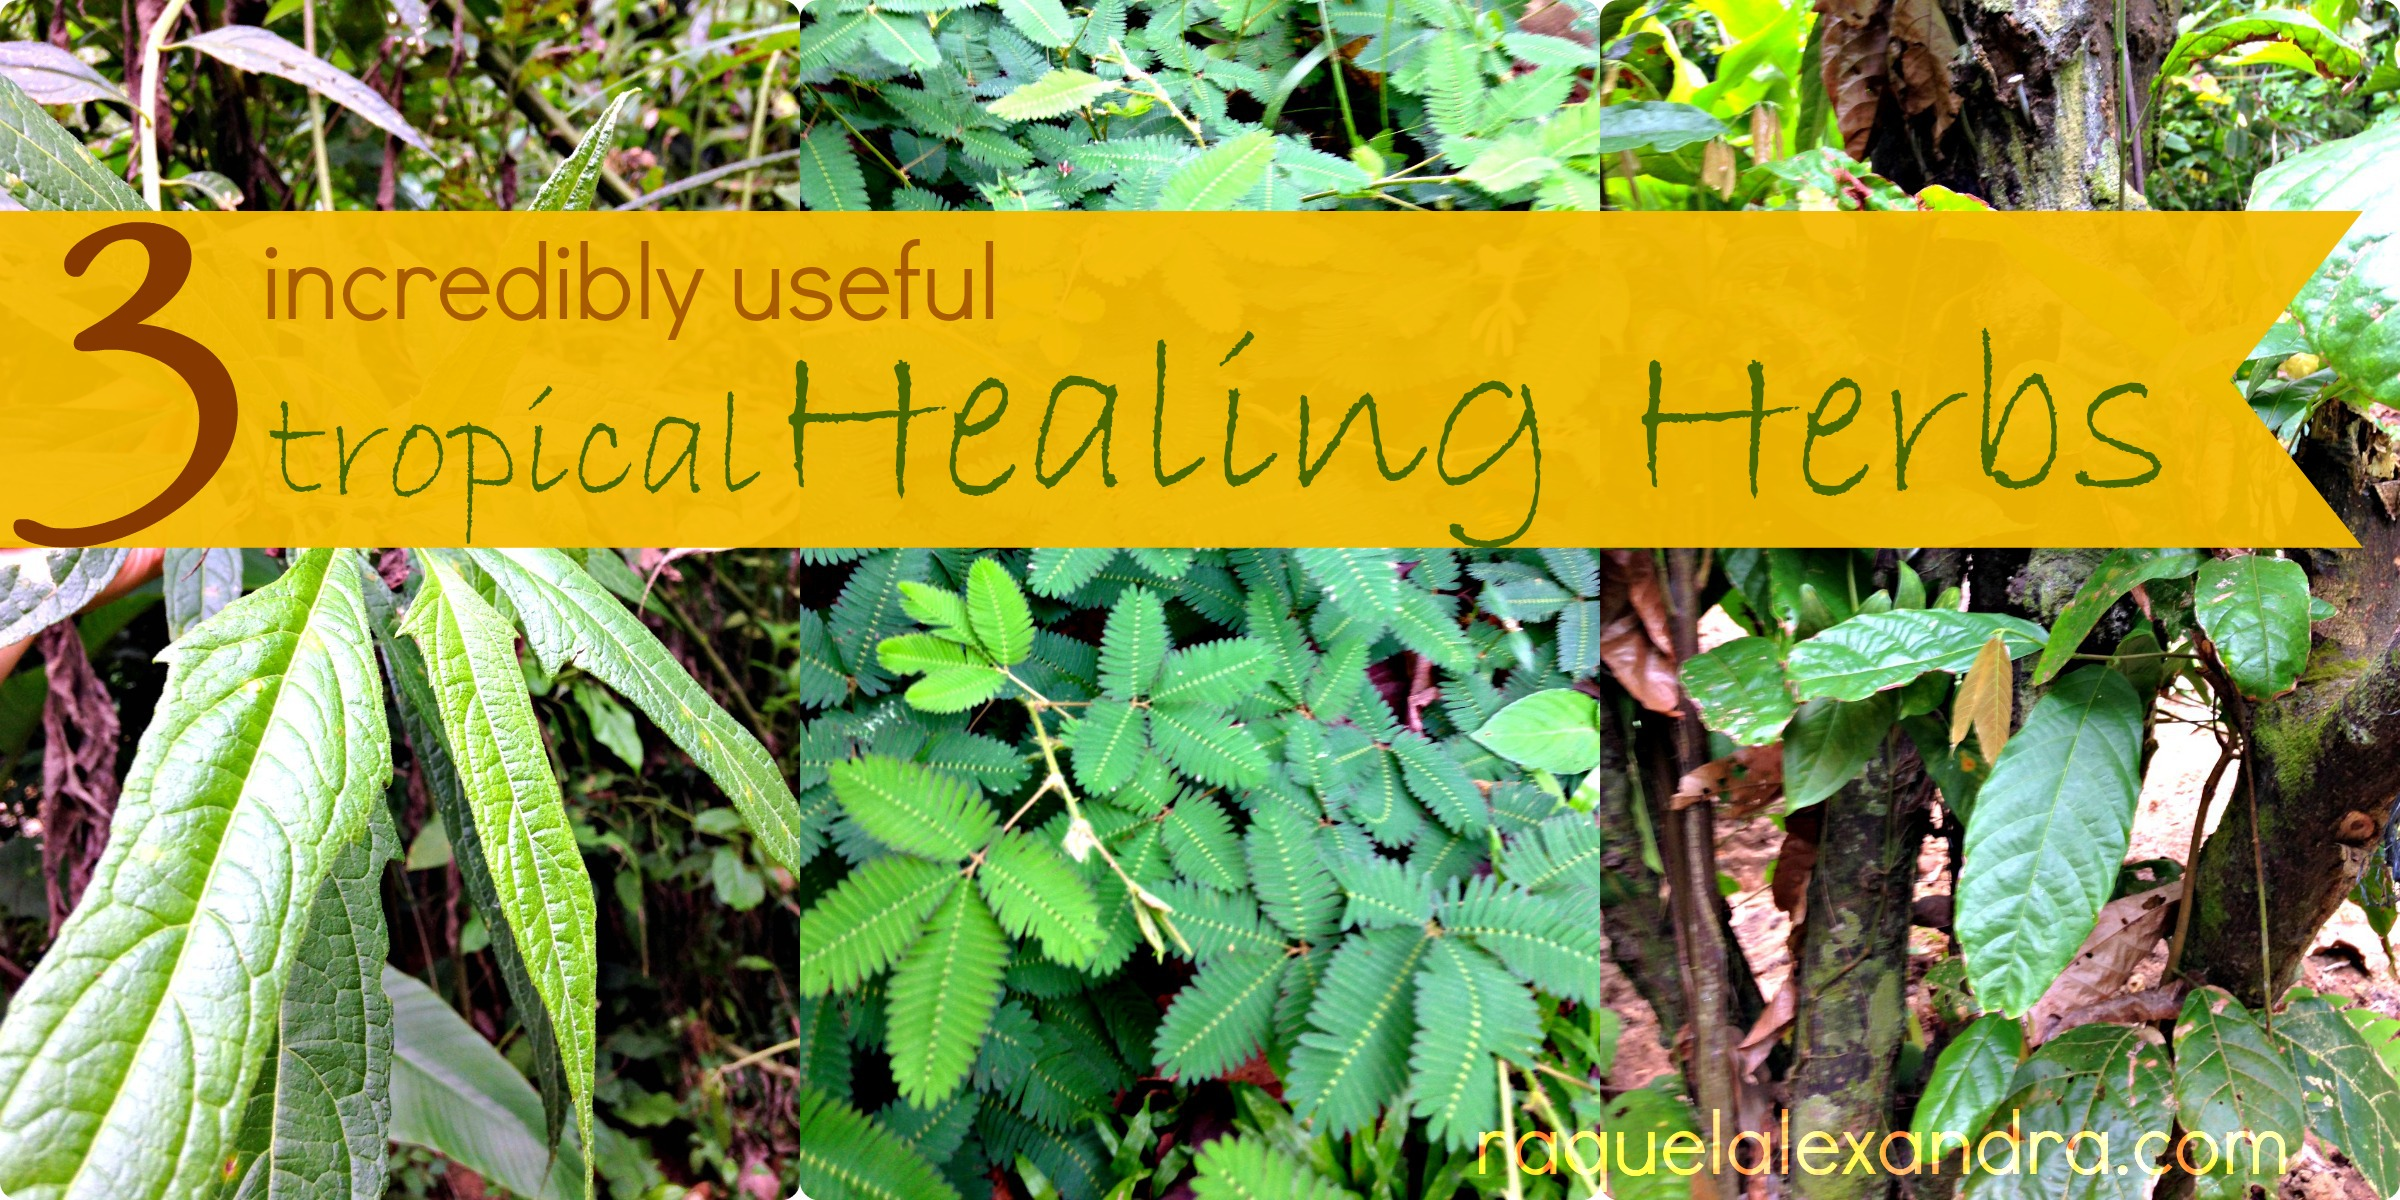 How are herbs useful? 14